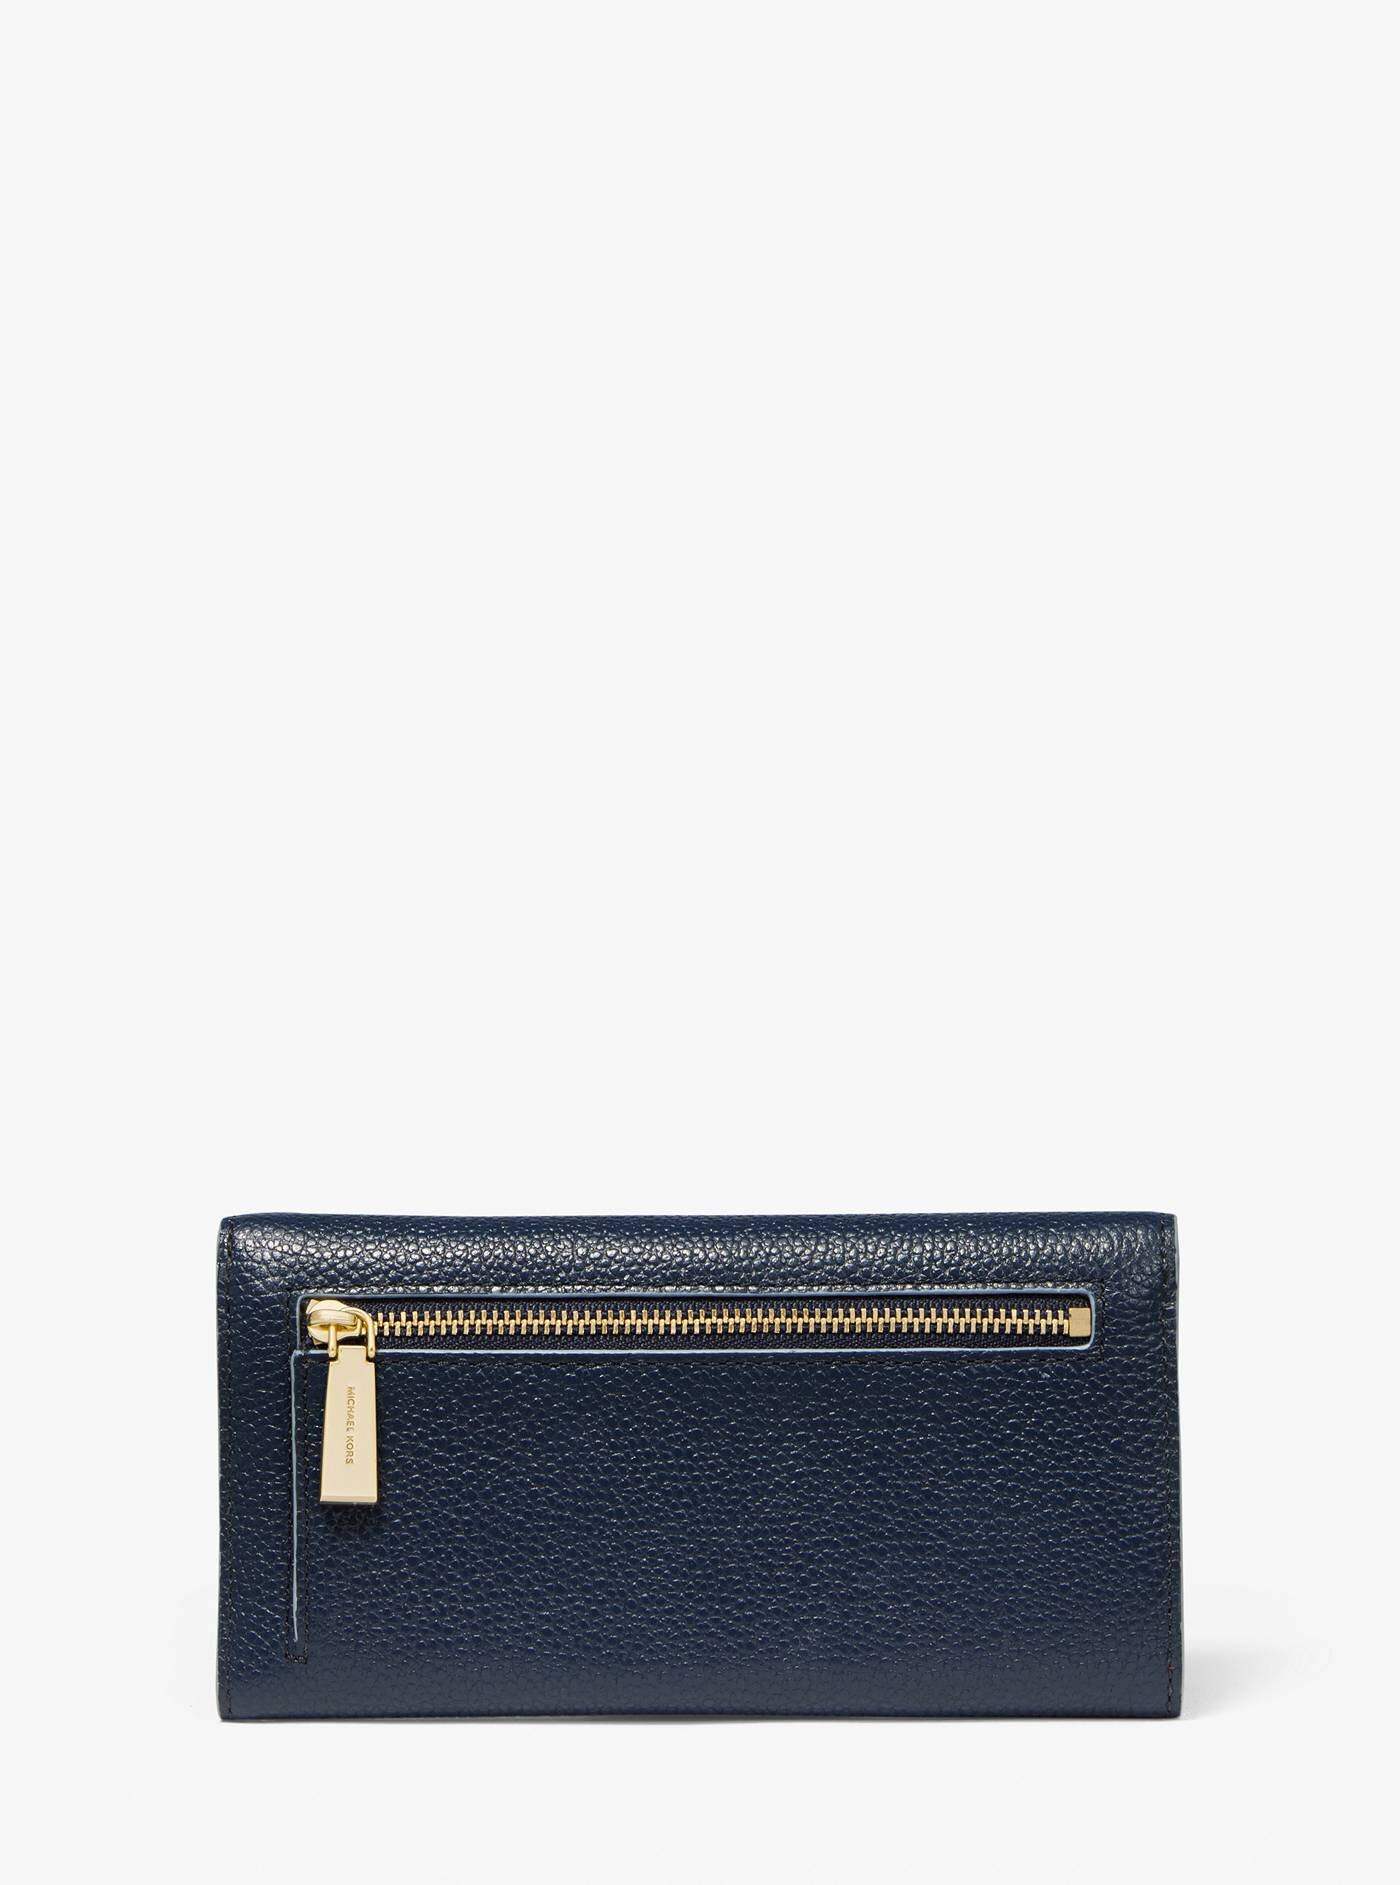 Large Two-Tone Pebbled Leather Envelope Wallet